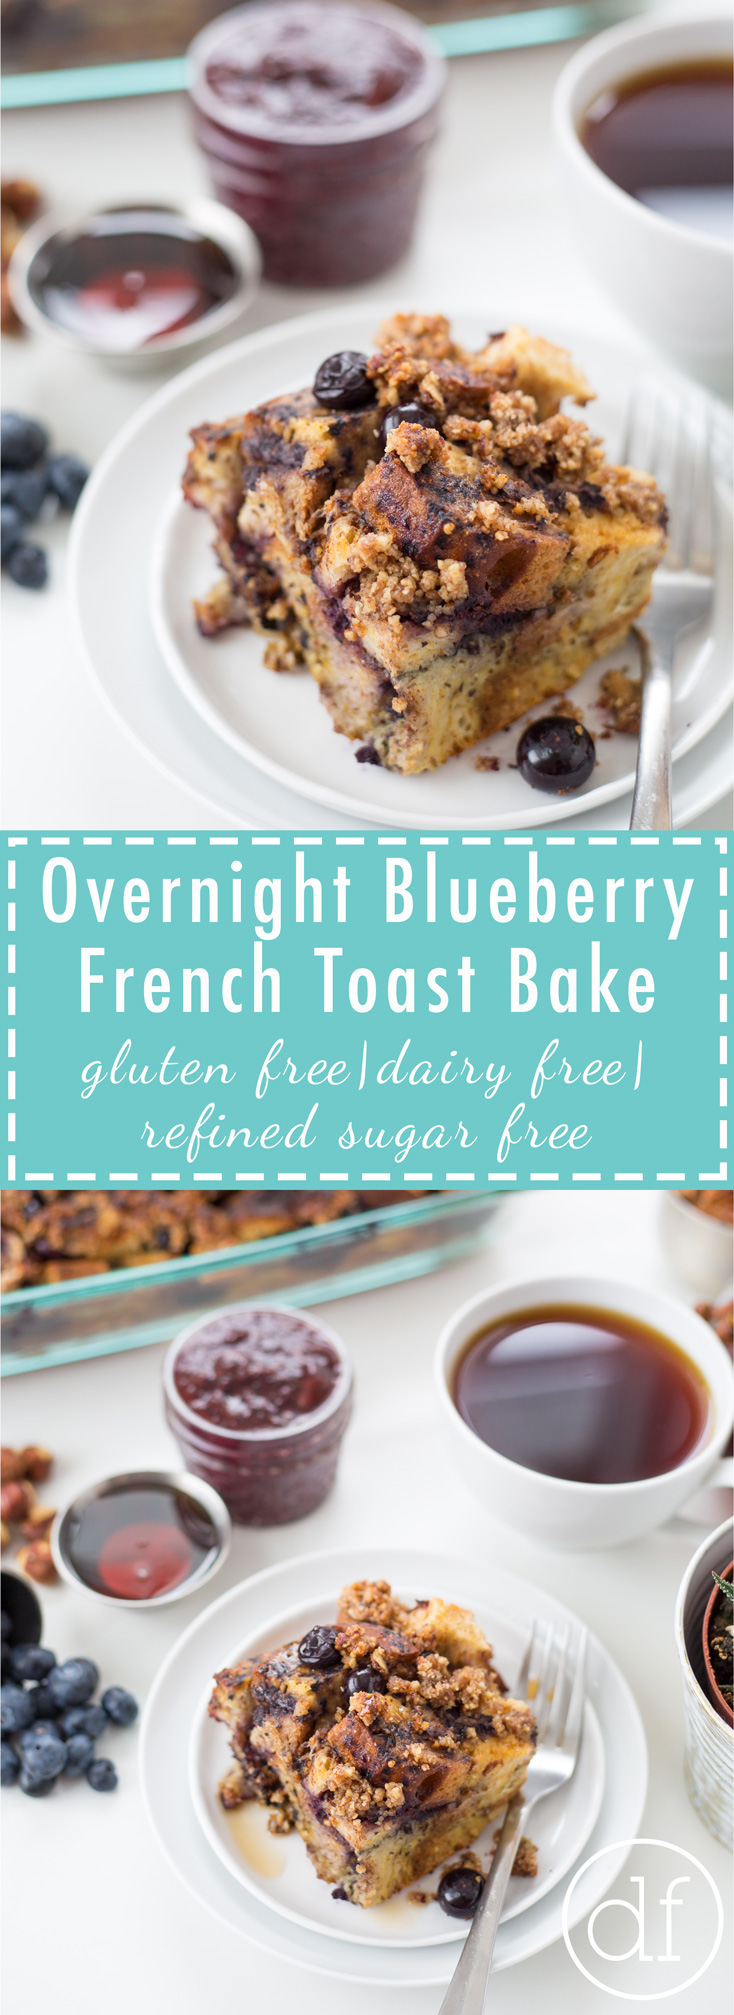 French Toast Bake, Brunch, Gluten Free, Dairy Free, Real Food, Blueberry French Toast, Overnight, Healthy, Define Fettle,